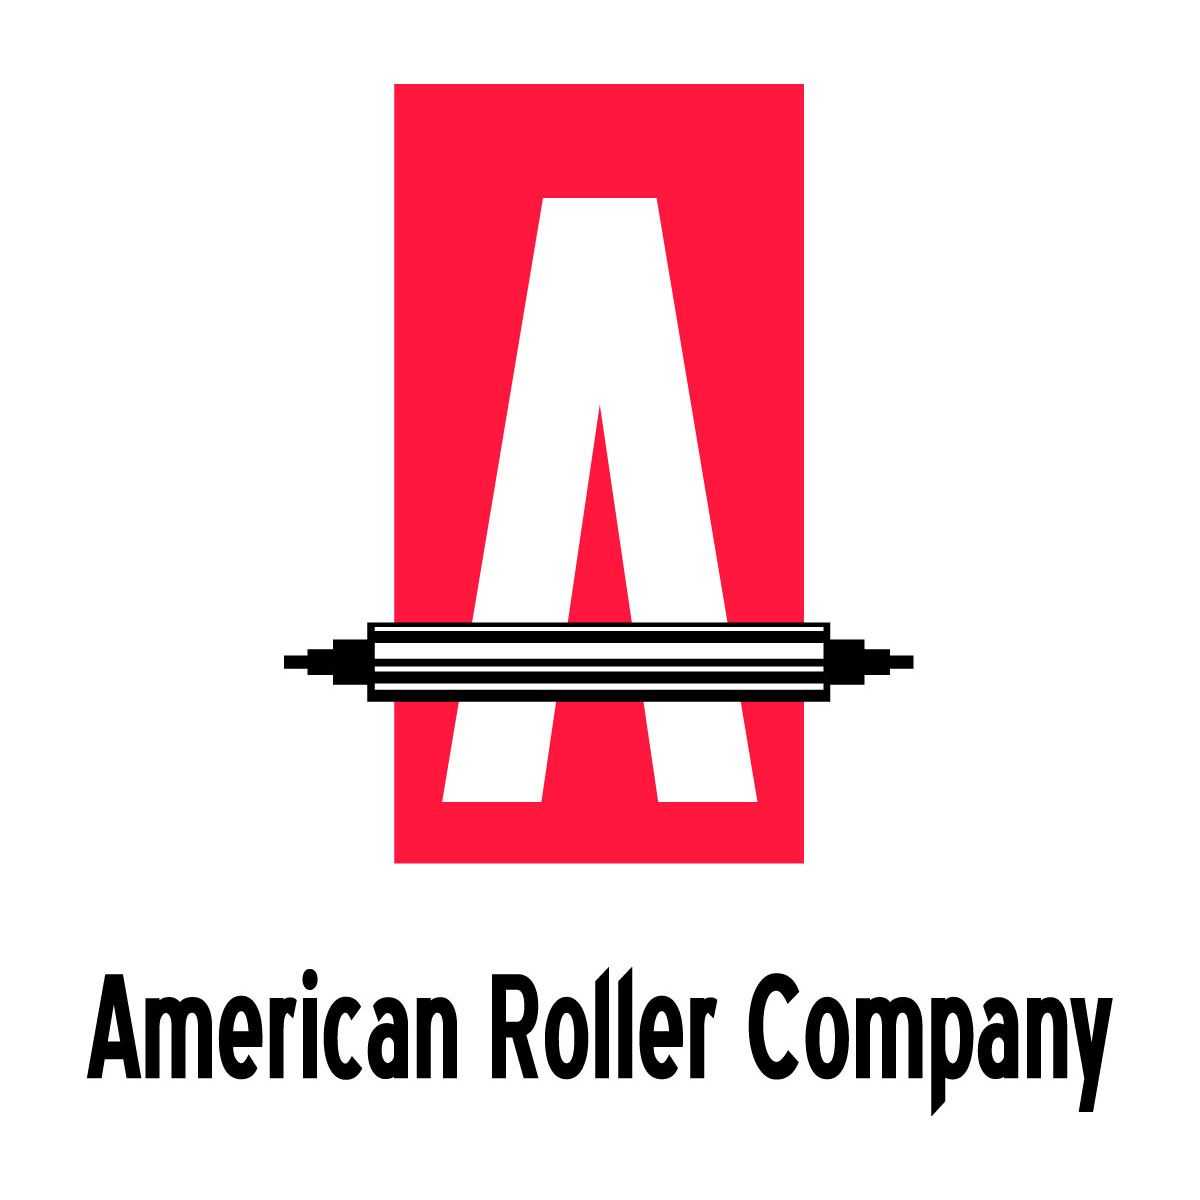 American Roller Company